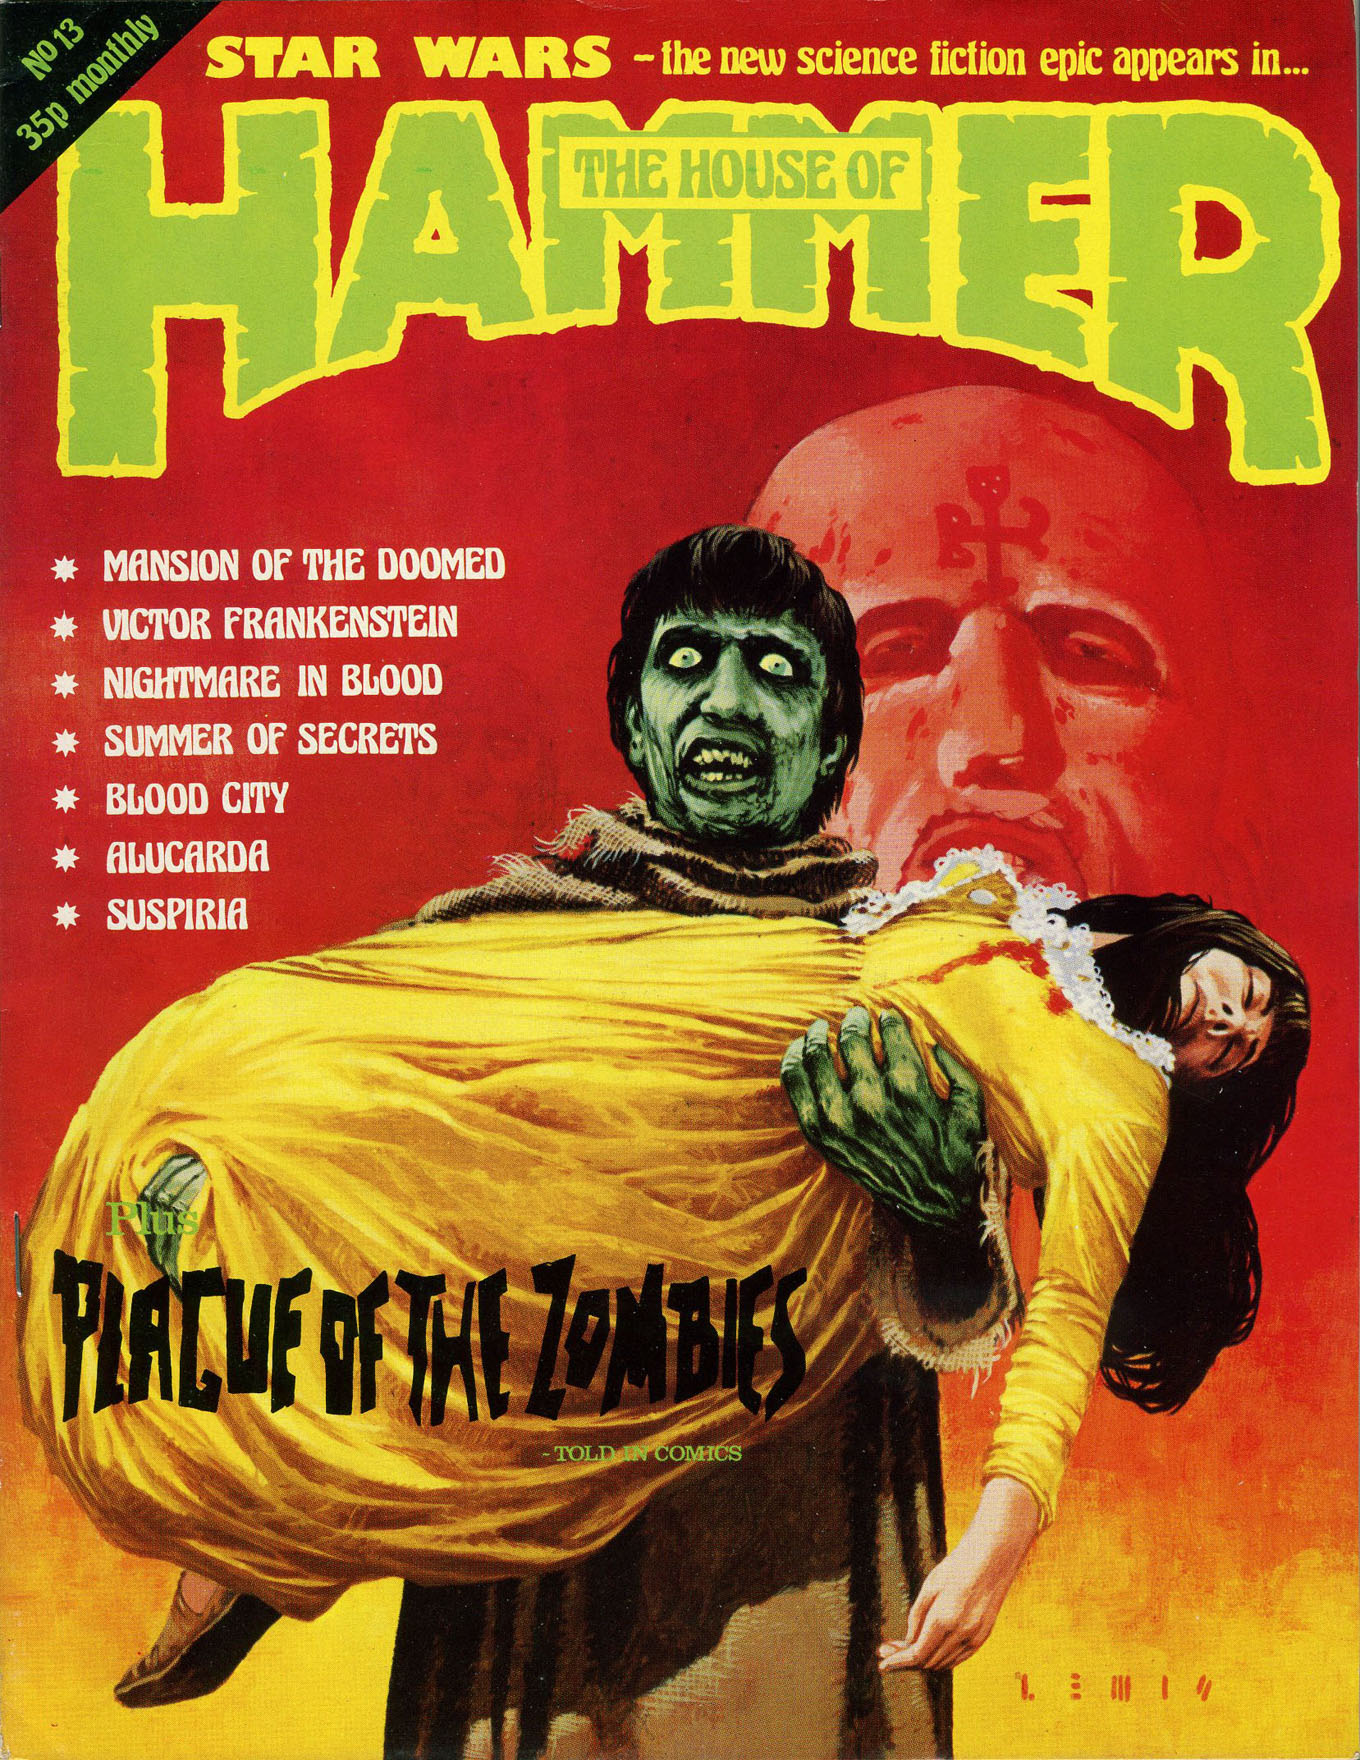 The House Of Hammer awesome-tober-fest 2013: house of hammer magazine #13 (1977